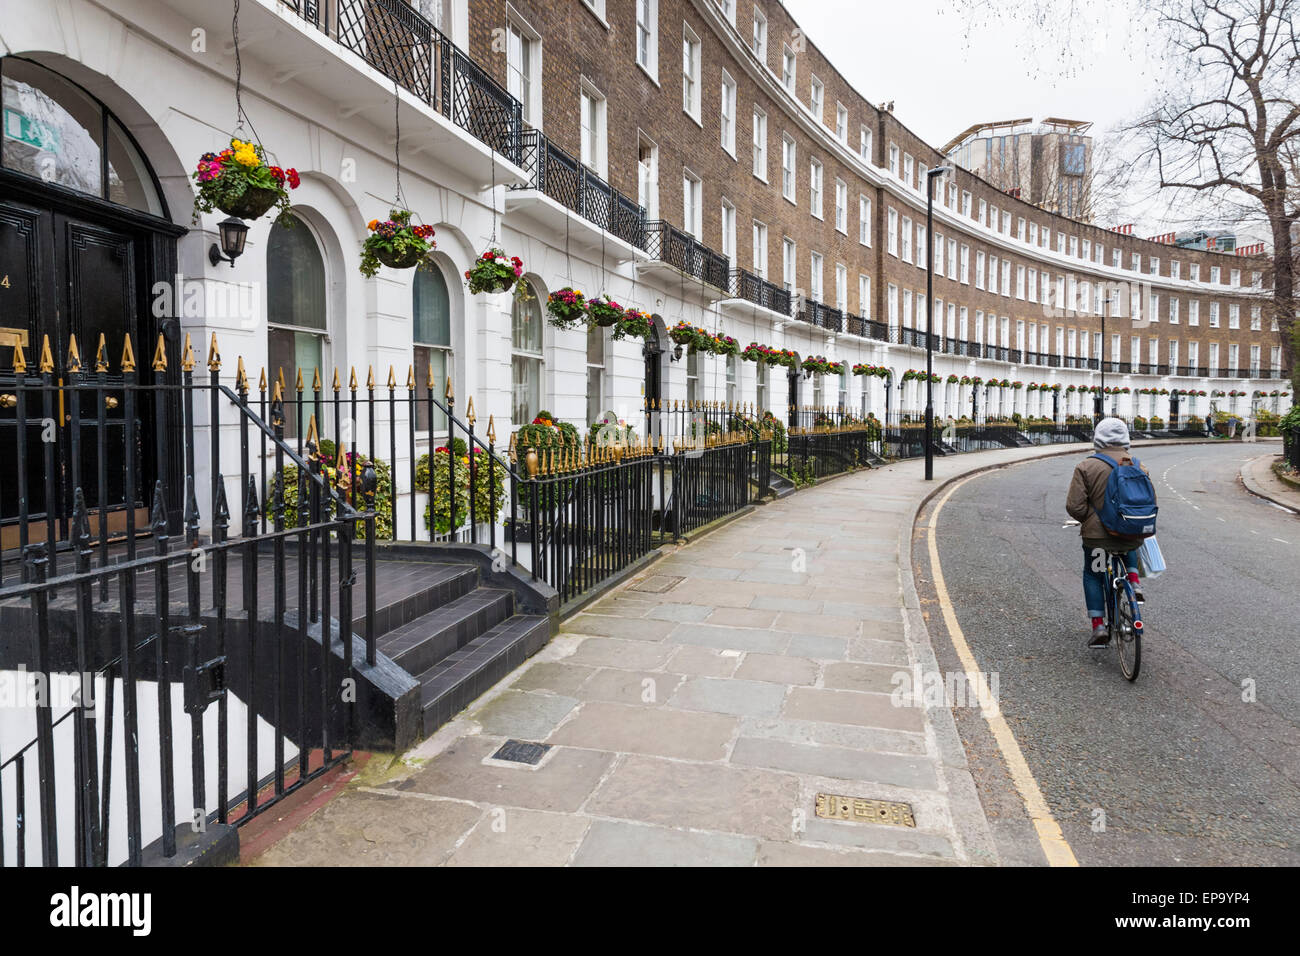 Georgian townhouses. A crescent of terraced houses at Cartwright Gardens, Bloomsbury, London, England, UK - Stock Image